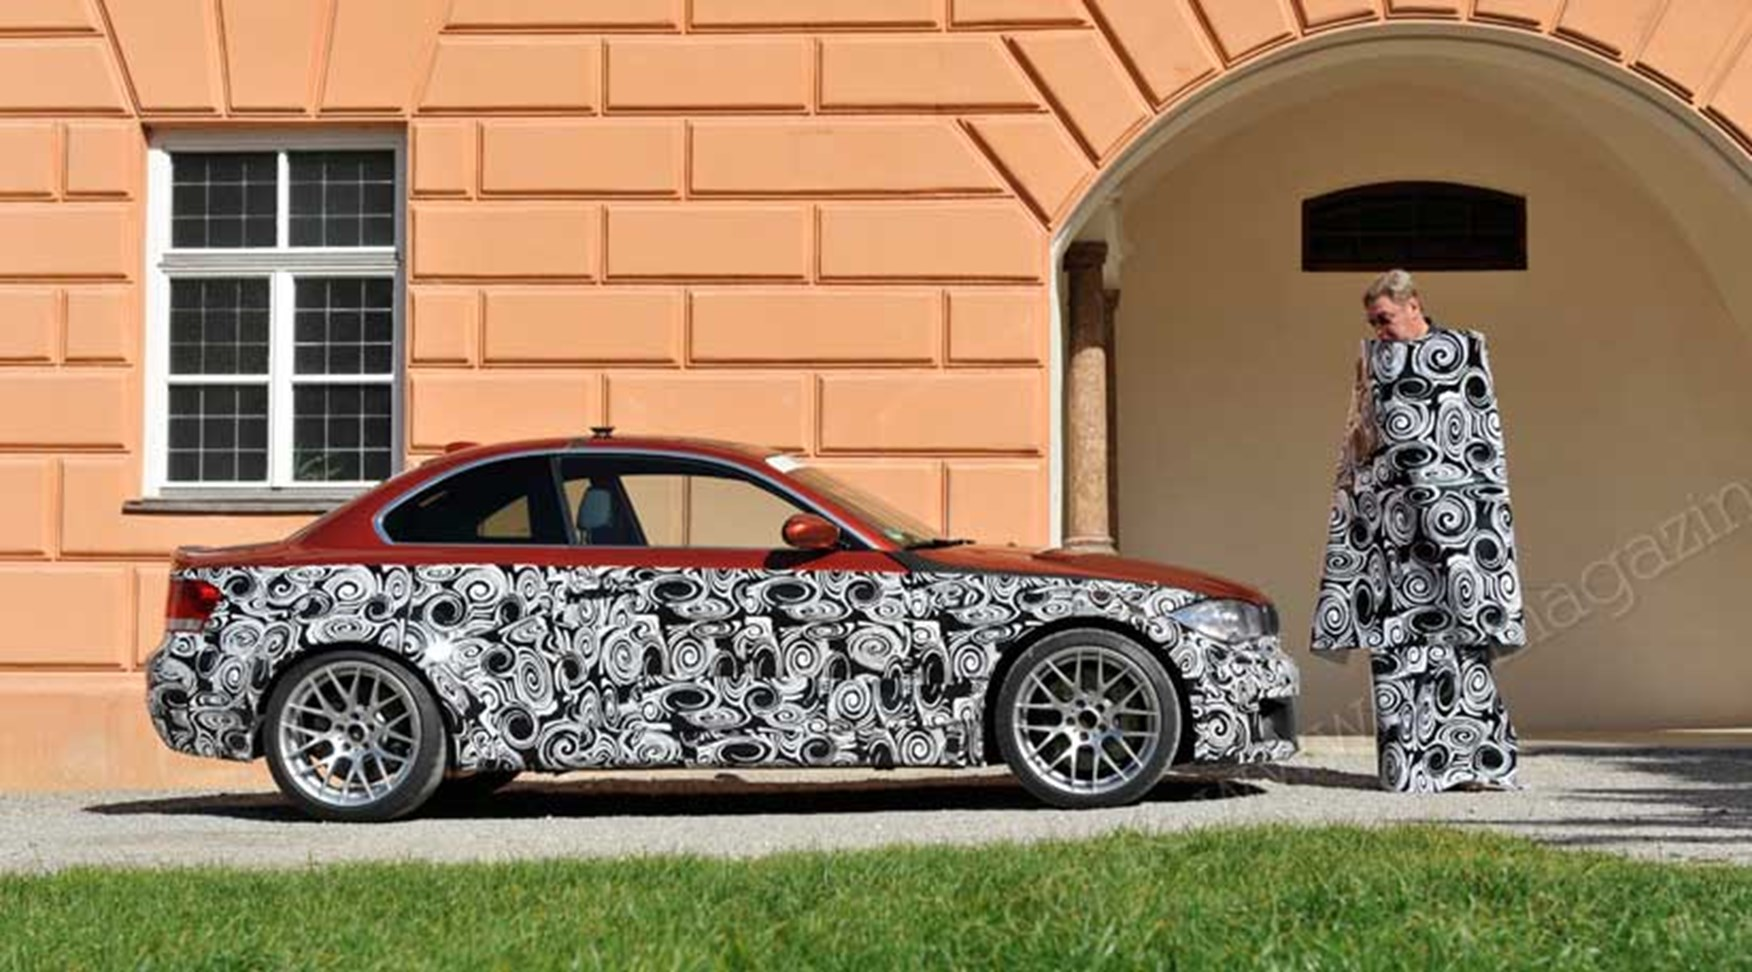 How Car Disguise Works And Kacher Camo By Car Magazine